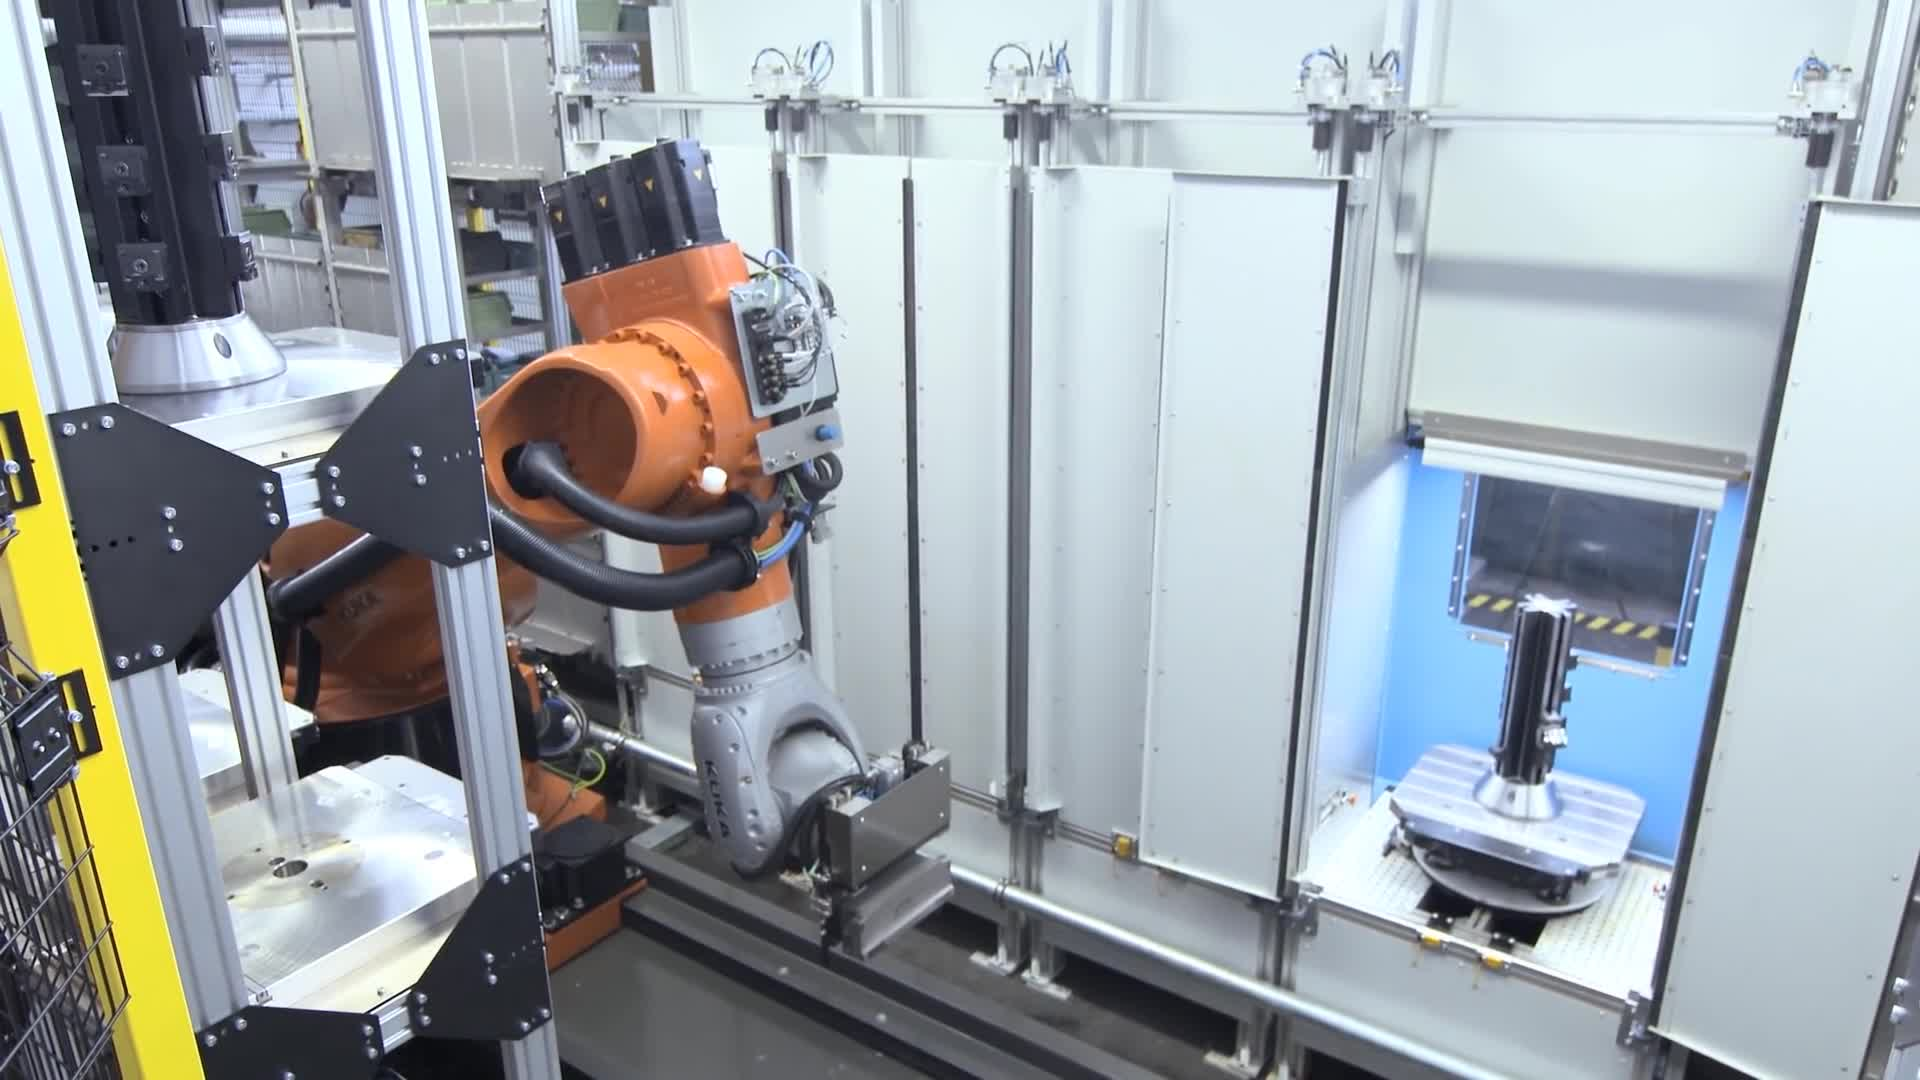 Automation, FORTEC, Industry, KUKA, MERZ, Machining, Manufacturing, robot, robotics, wbt automation, MERZ Increases Machining Productivity with KUKA KR FORTEC Robot GIFs